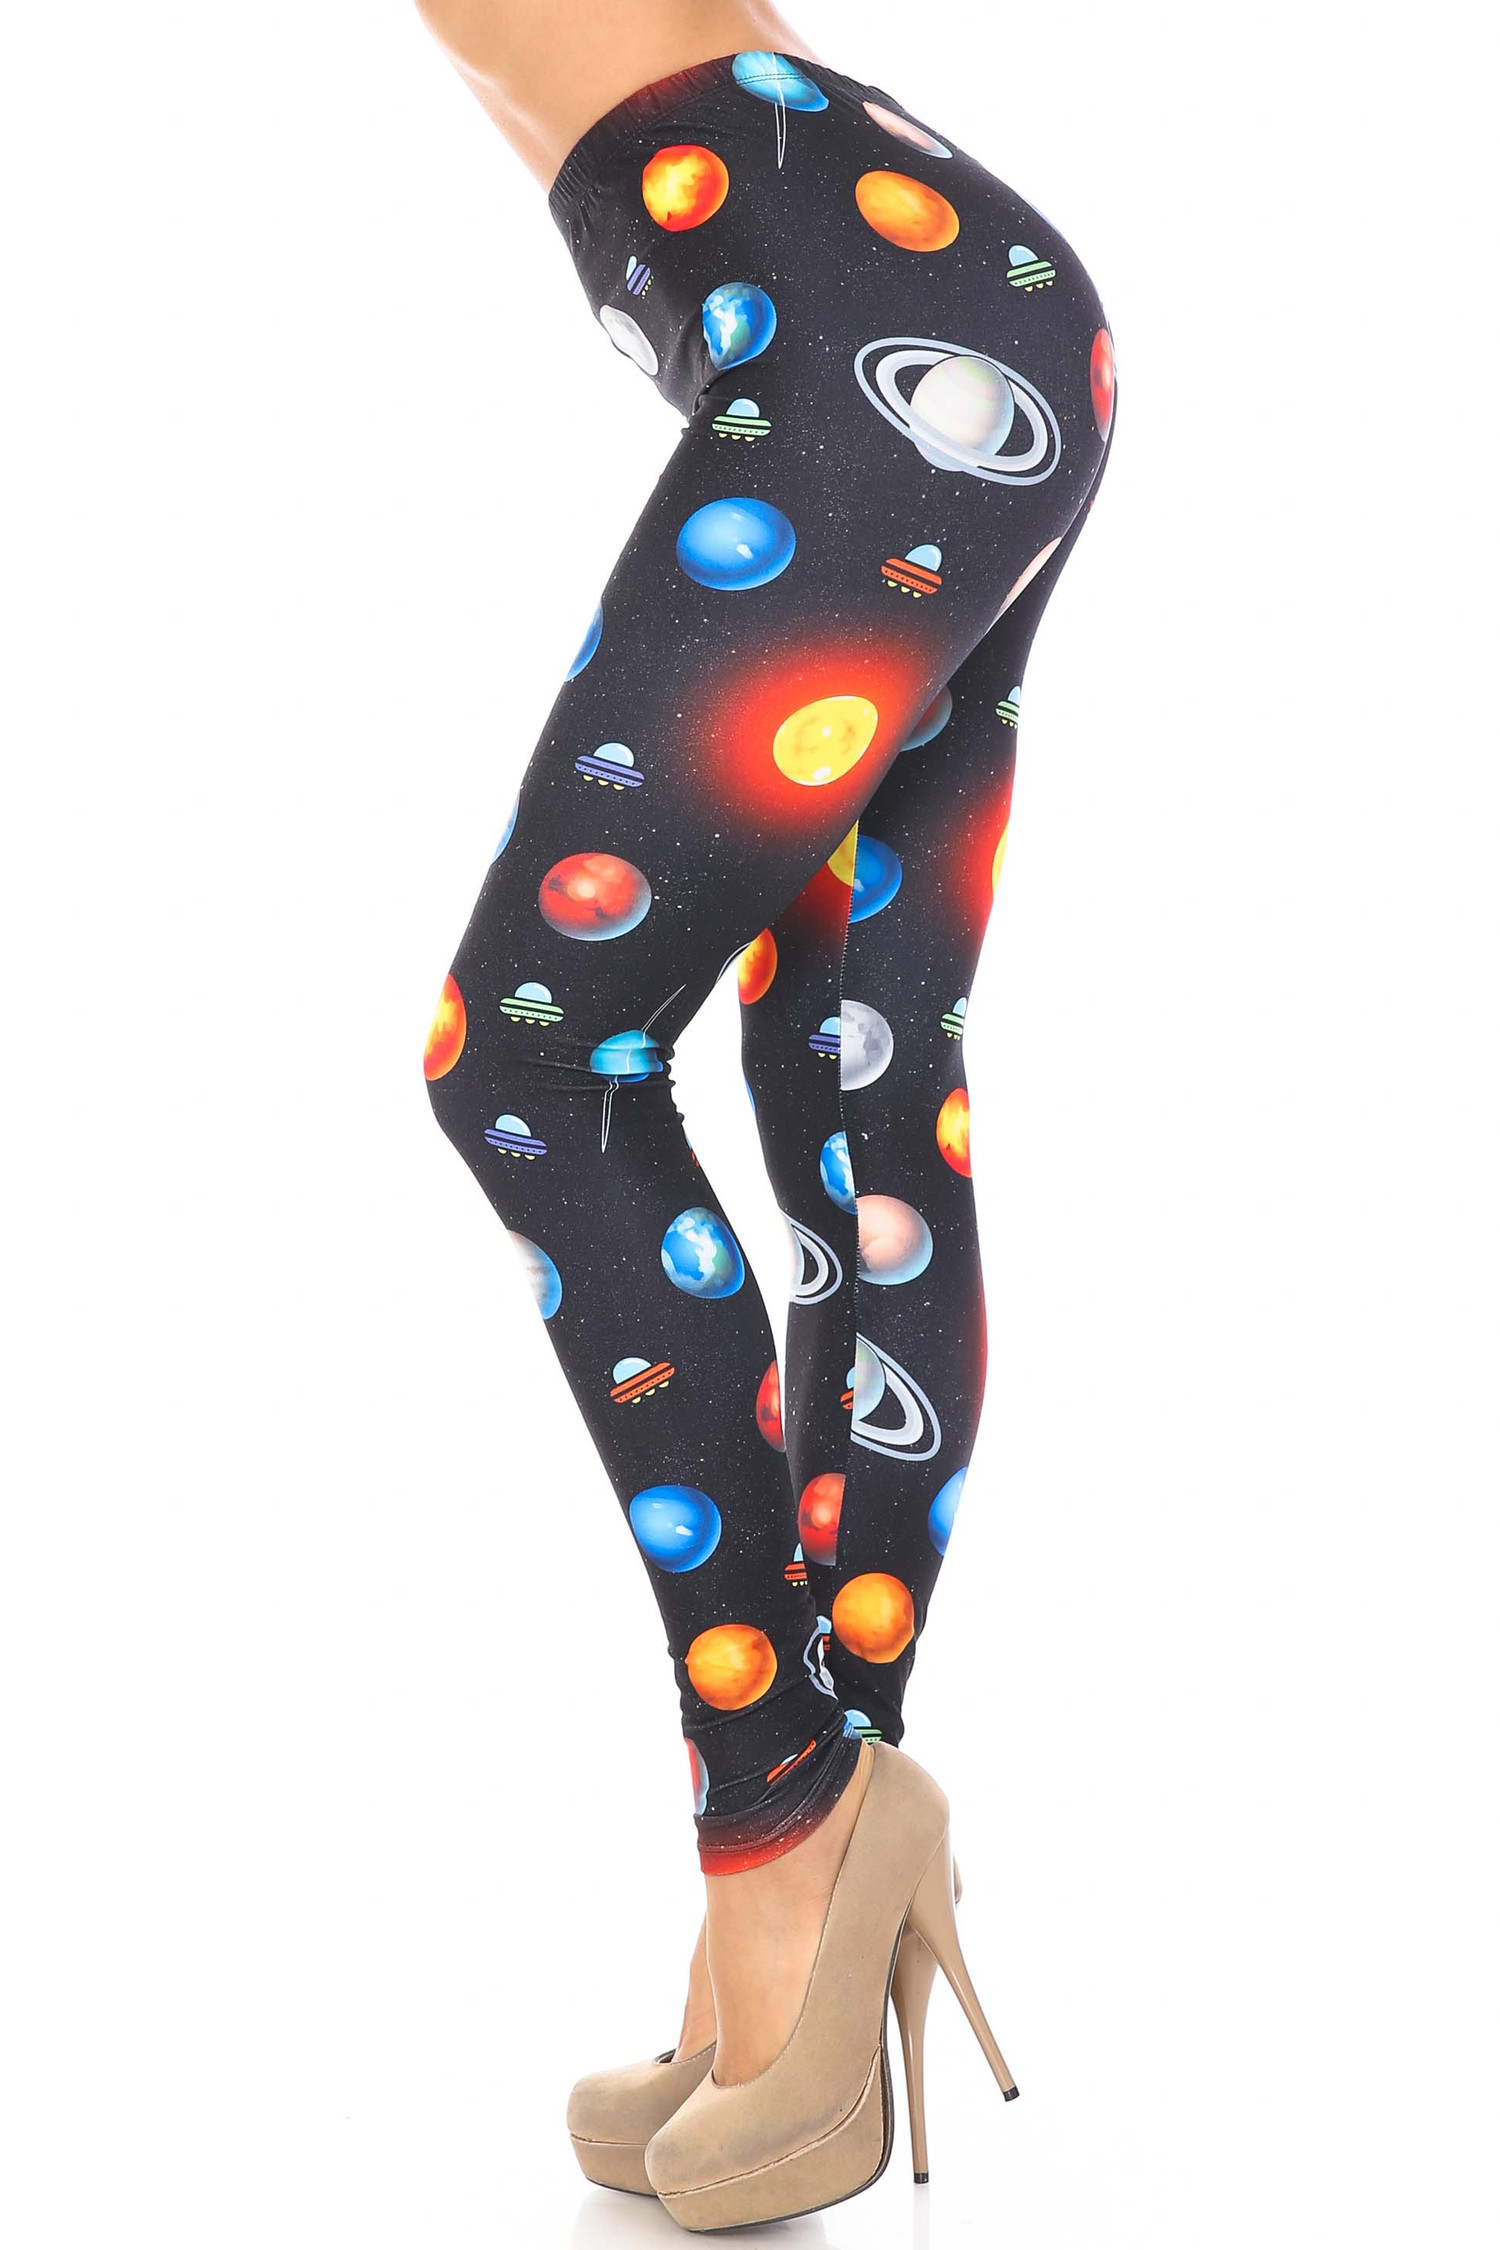 Creamy Soft Galaxy Planets Extra Plus Size Leggings - 3X-5X - USA Fashion™